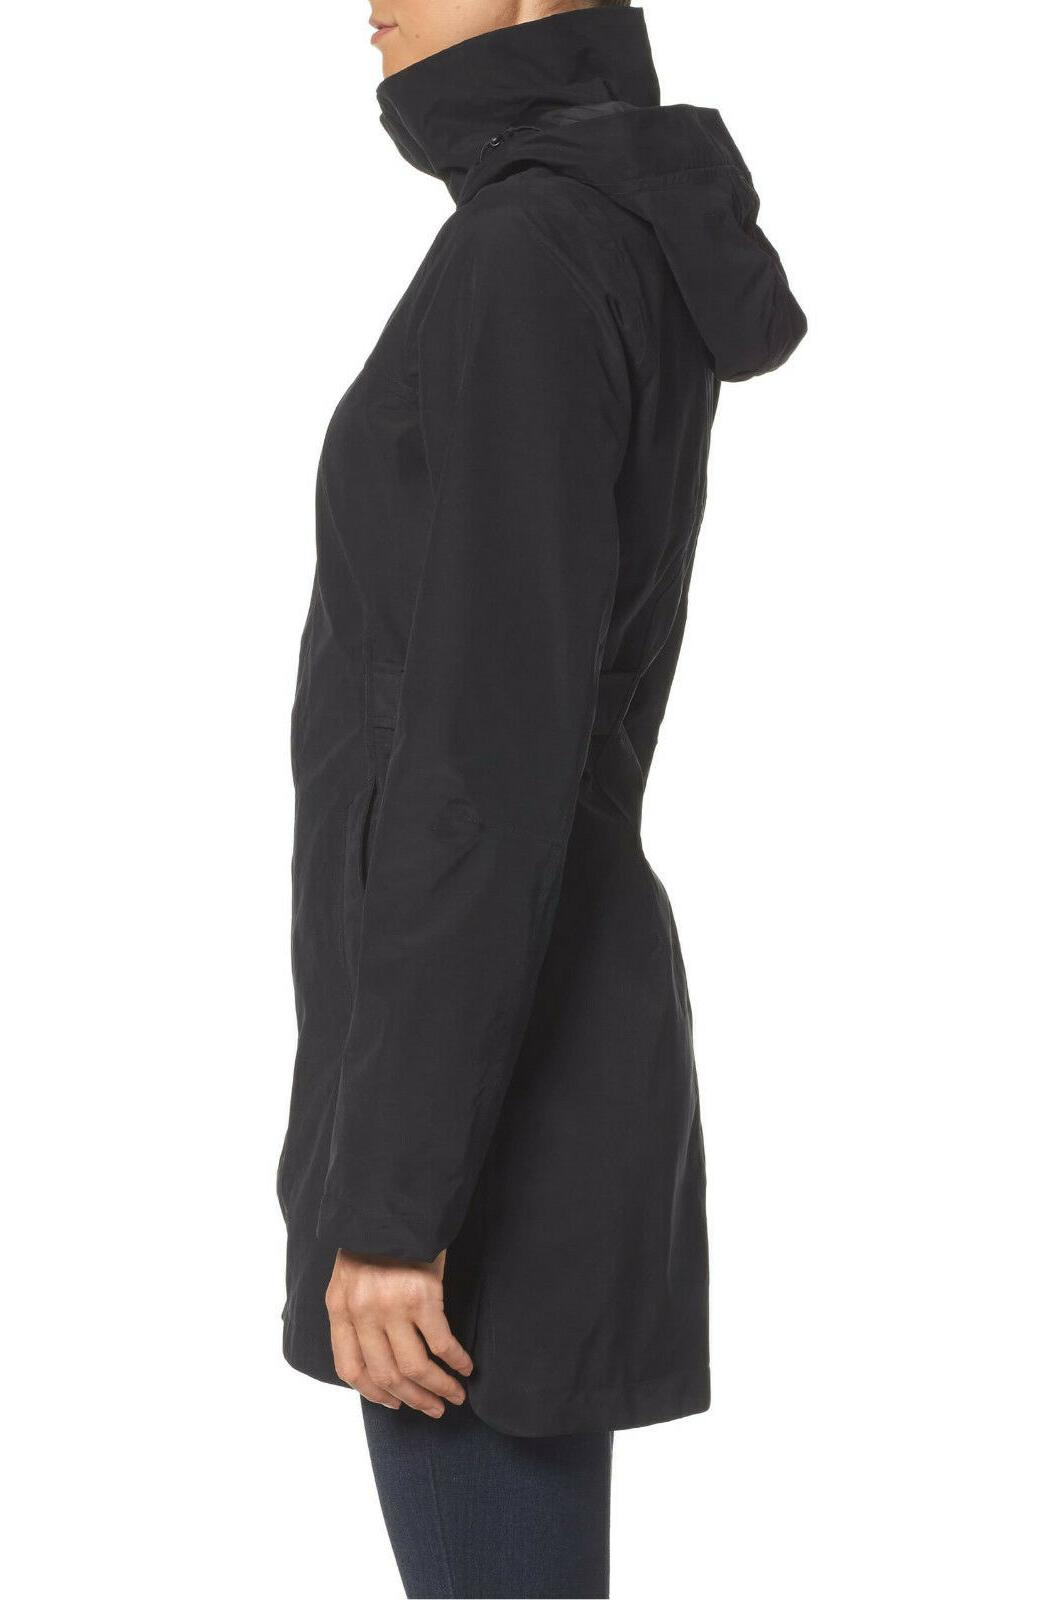 $200 THE NORTH FACE Laney II Trench COAT WINTER BLACK INSULATED